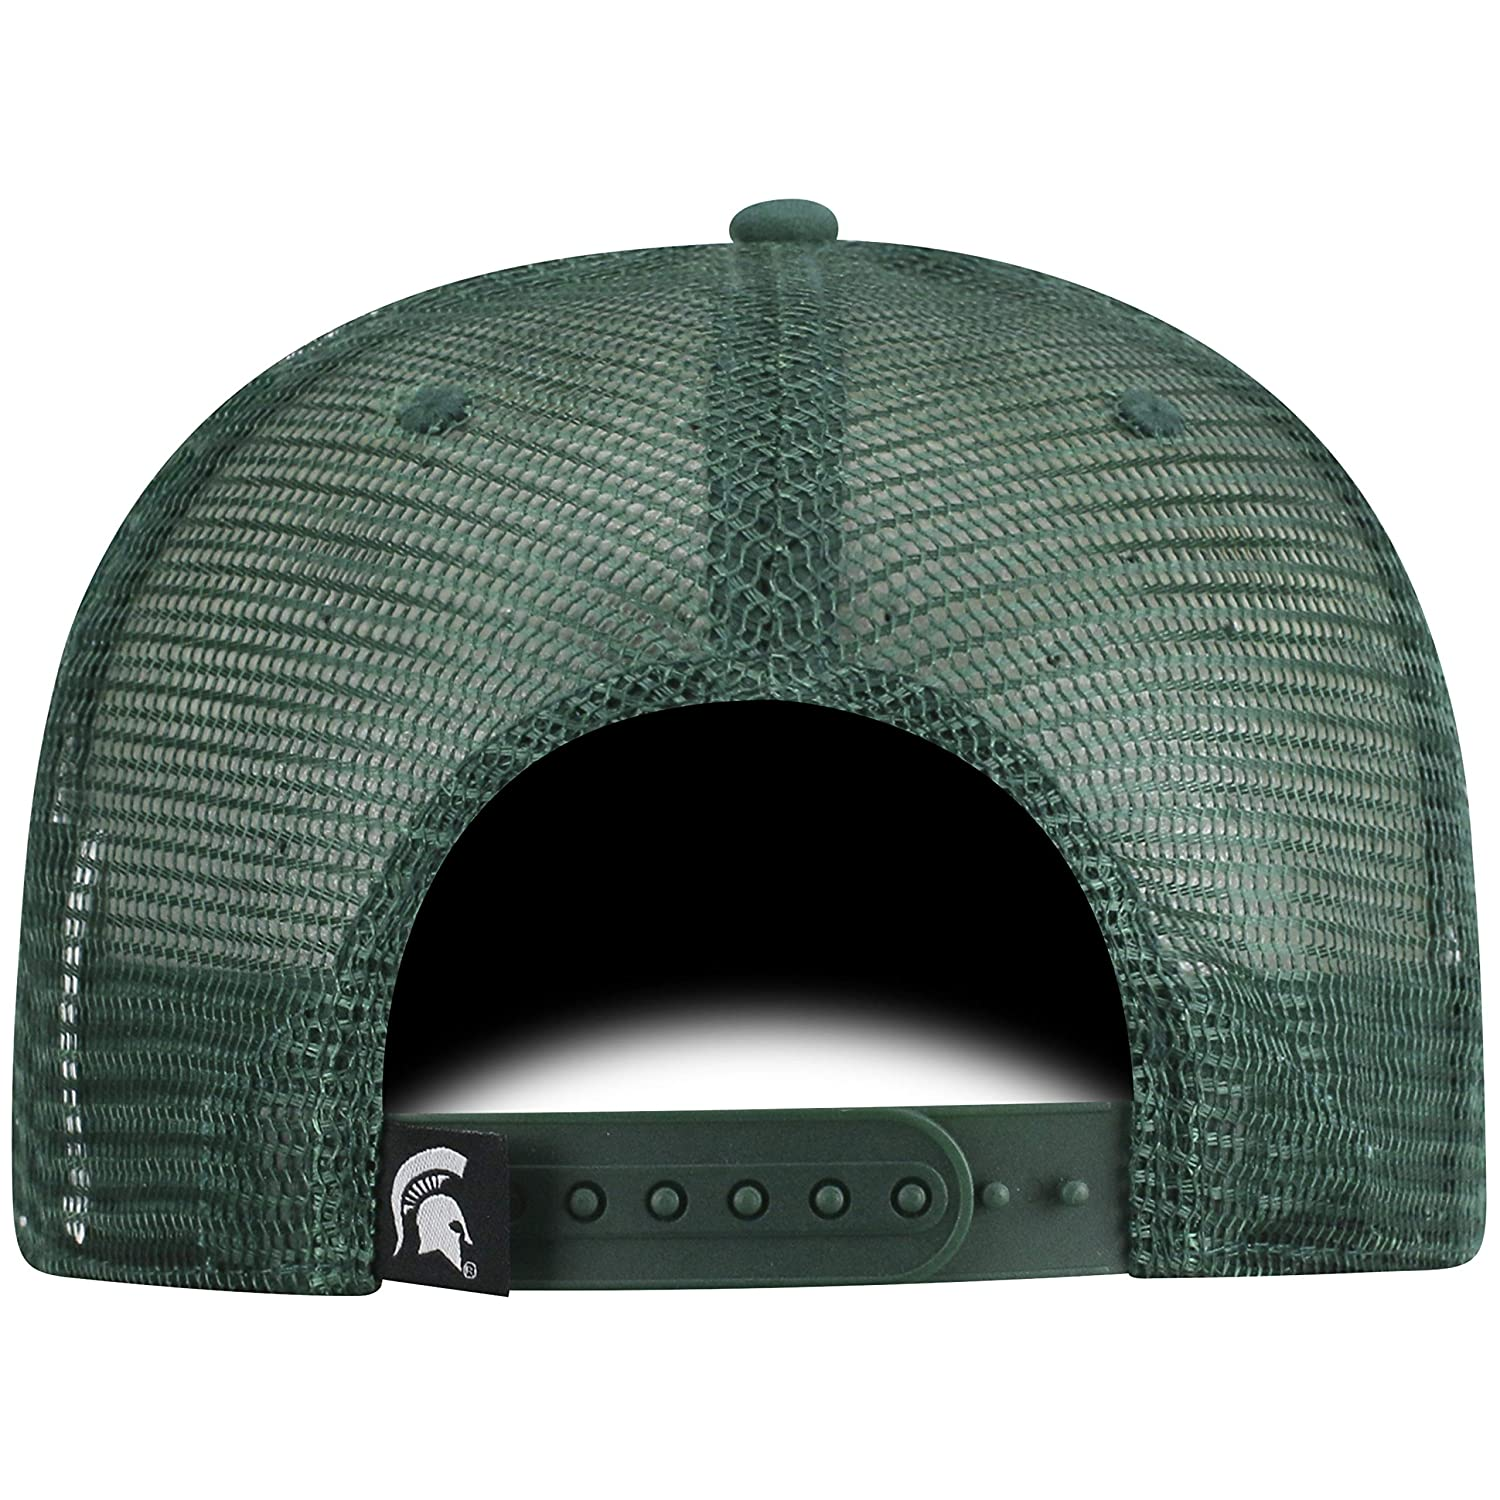 df4c6a904f3 Amazon.com   Top of the World Michigan State Spartans Official NCAA  Adjustable 2Iron Trucker Mesh Hat Cap 394664   Sports   Outdoors